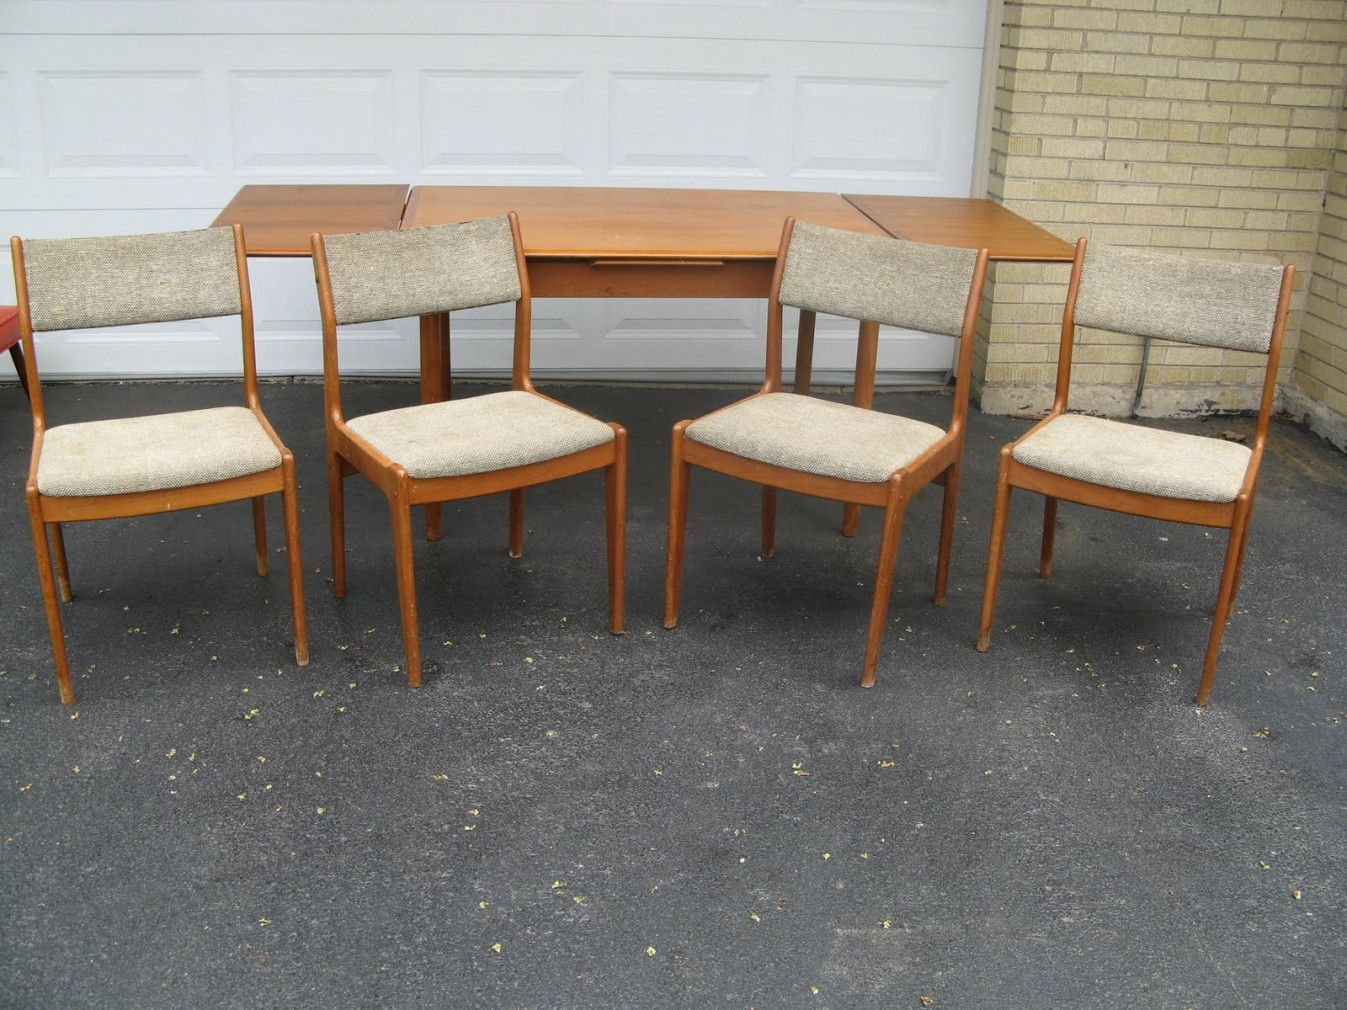 Charming 50+ Teak Dining Chairs Indoor   Modern Vintage Furniture Check More At  Http:/